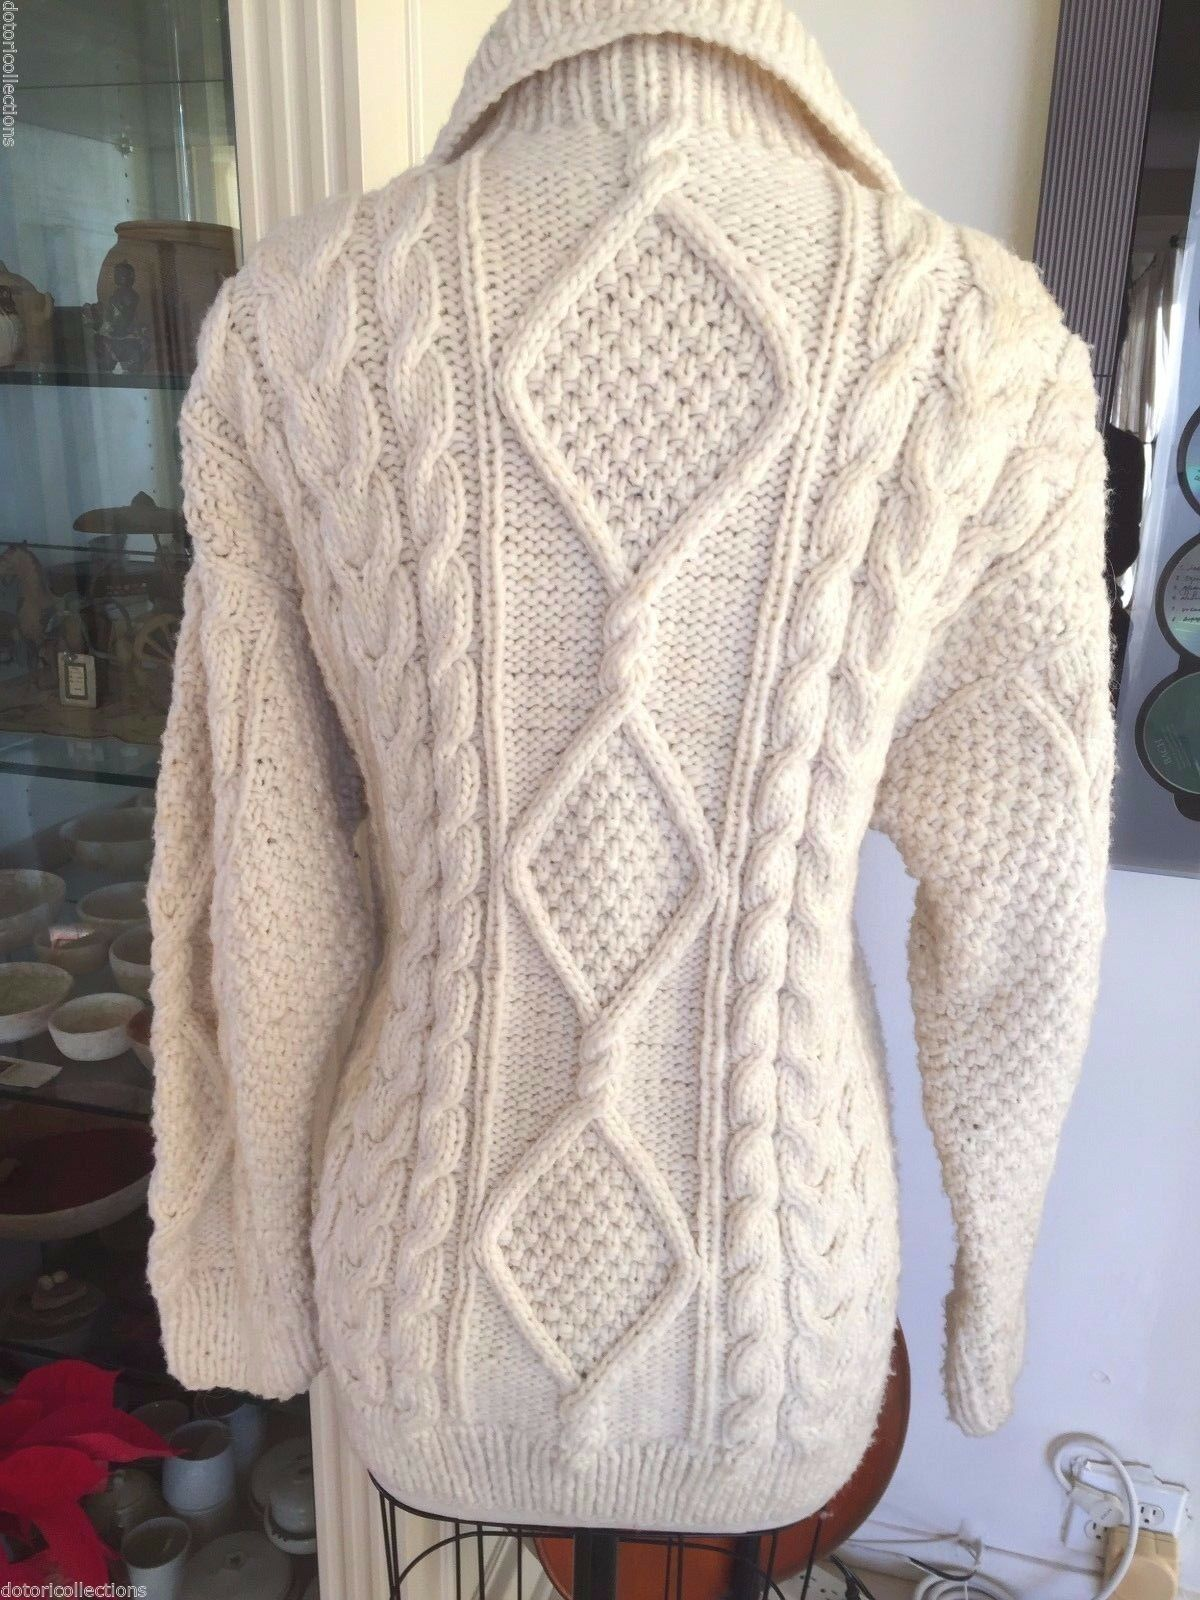 Swedish Hand Hand Hand Knit Sweater (Cardigan) with Swedish 100% Wool, very light and warm 8634a9